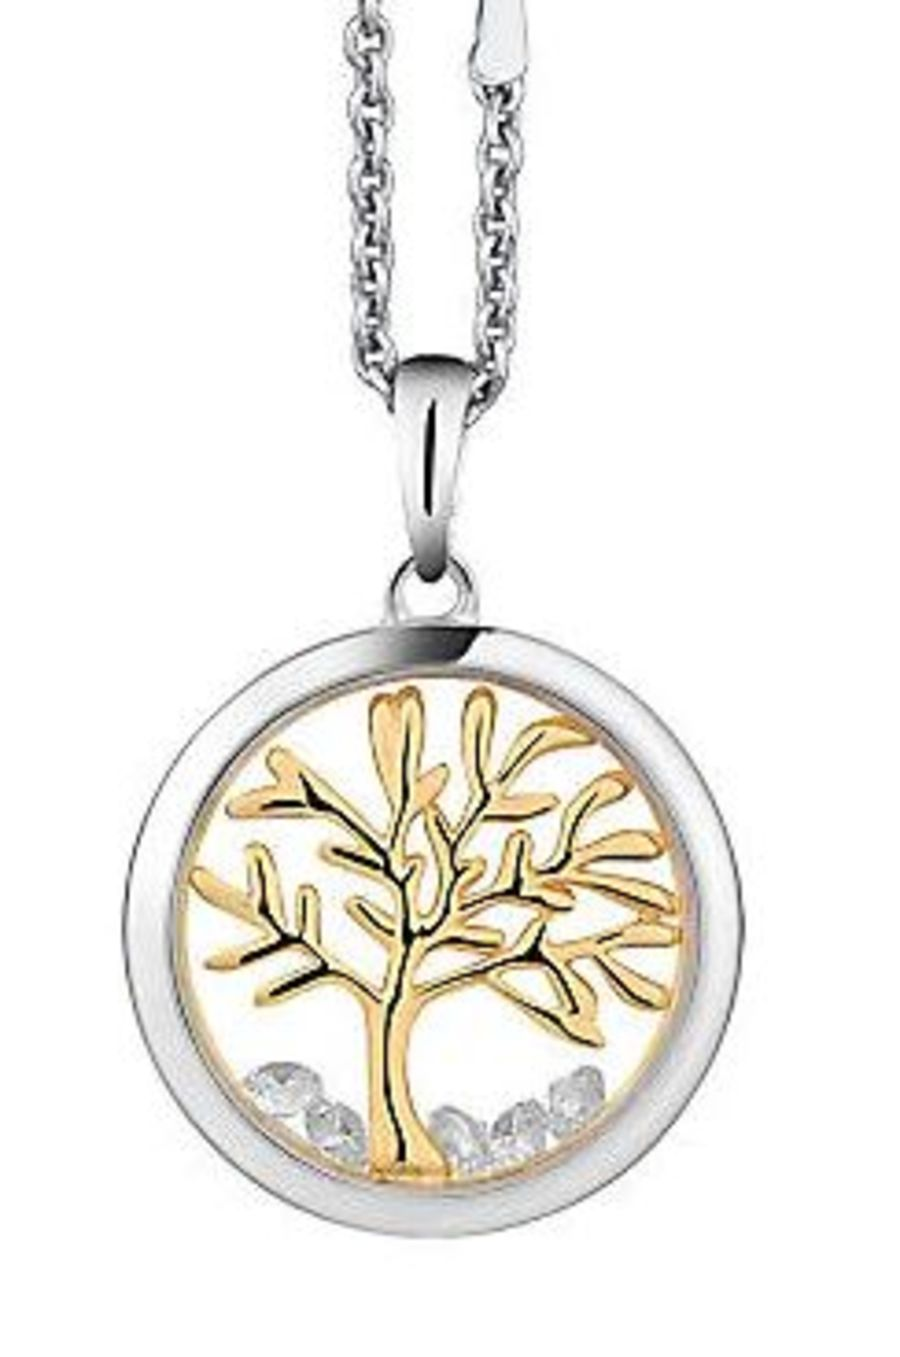 Astra Silver Tree Of Life Pendant and Chain 16mm